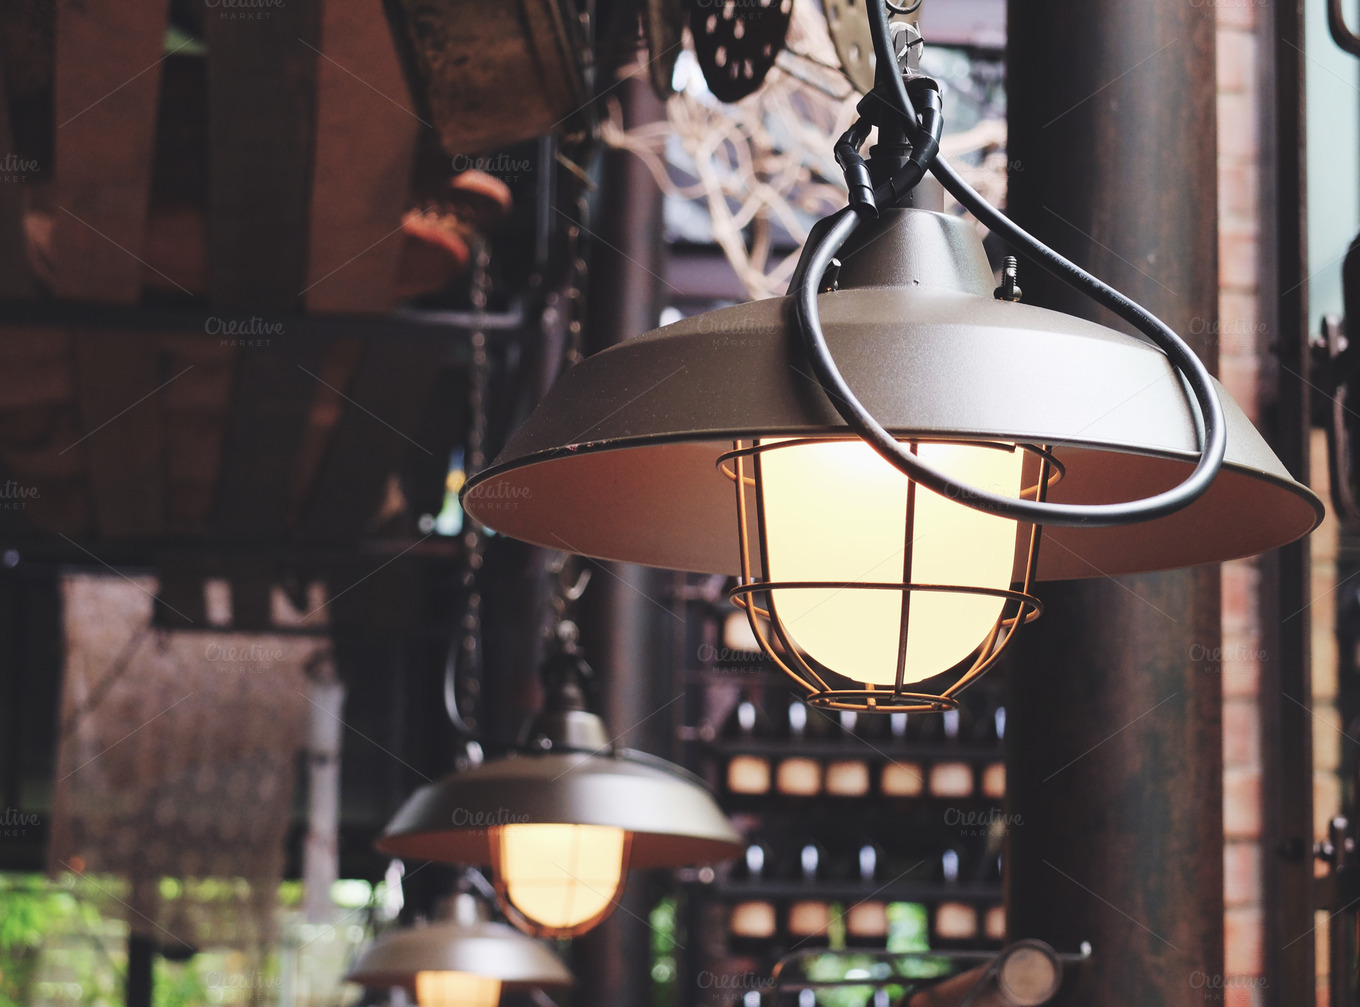 Classic-hanging-light-bulb-in-cafe